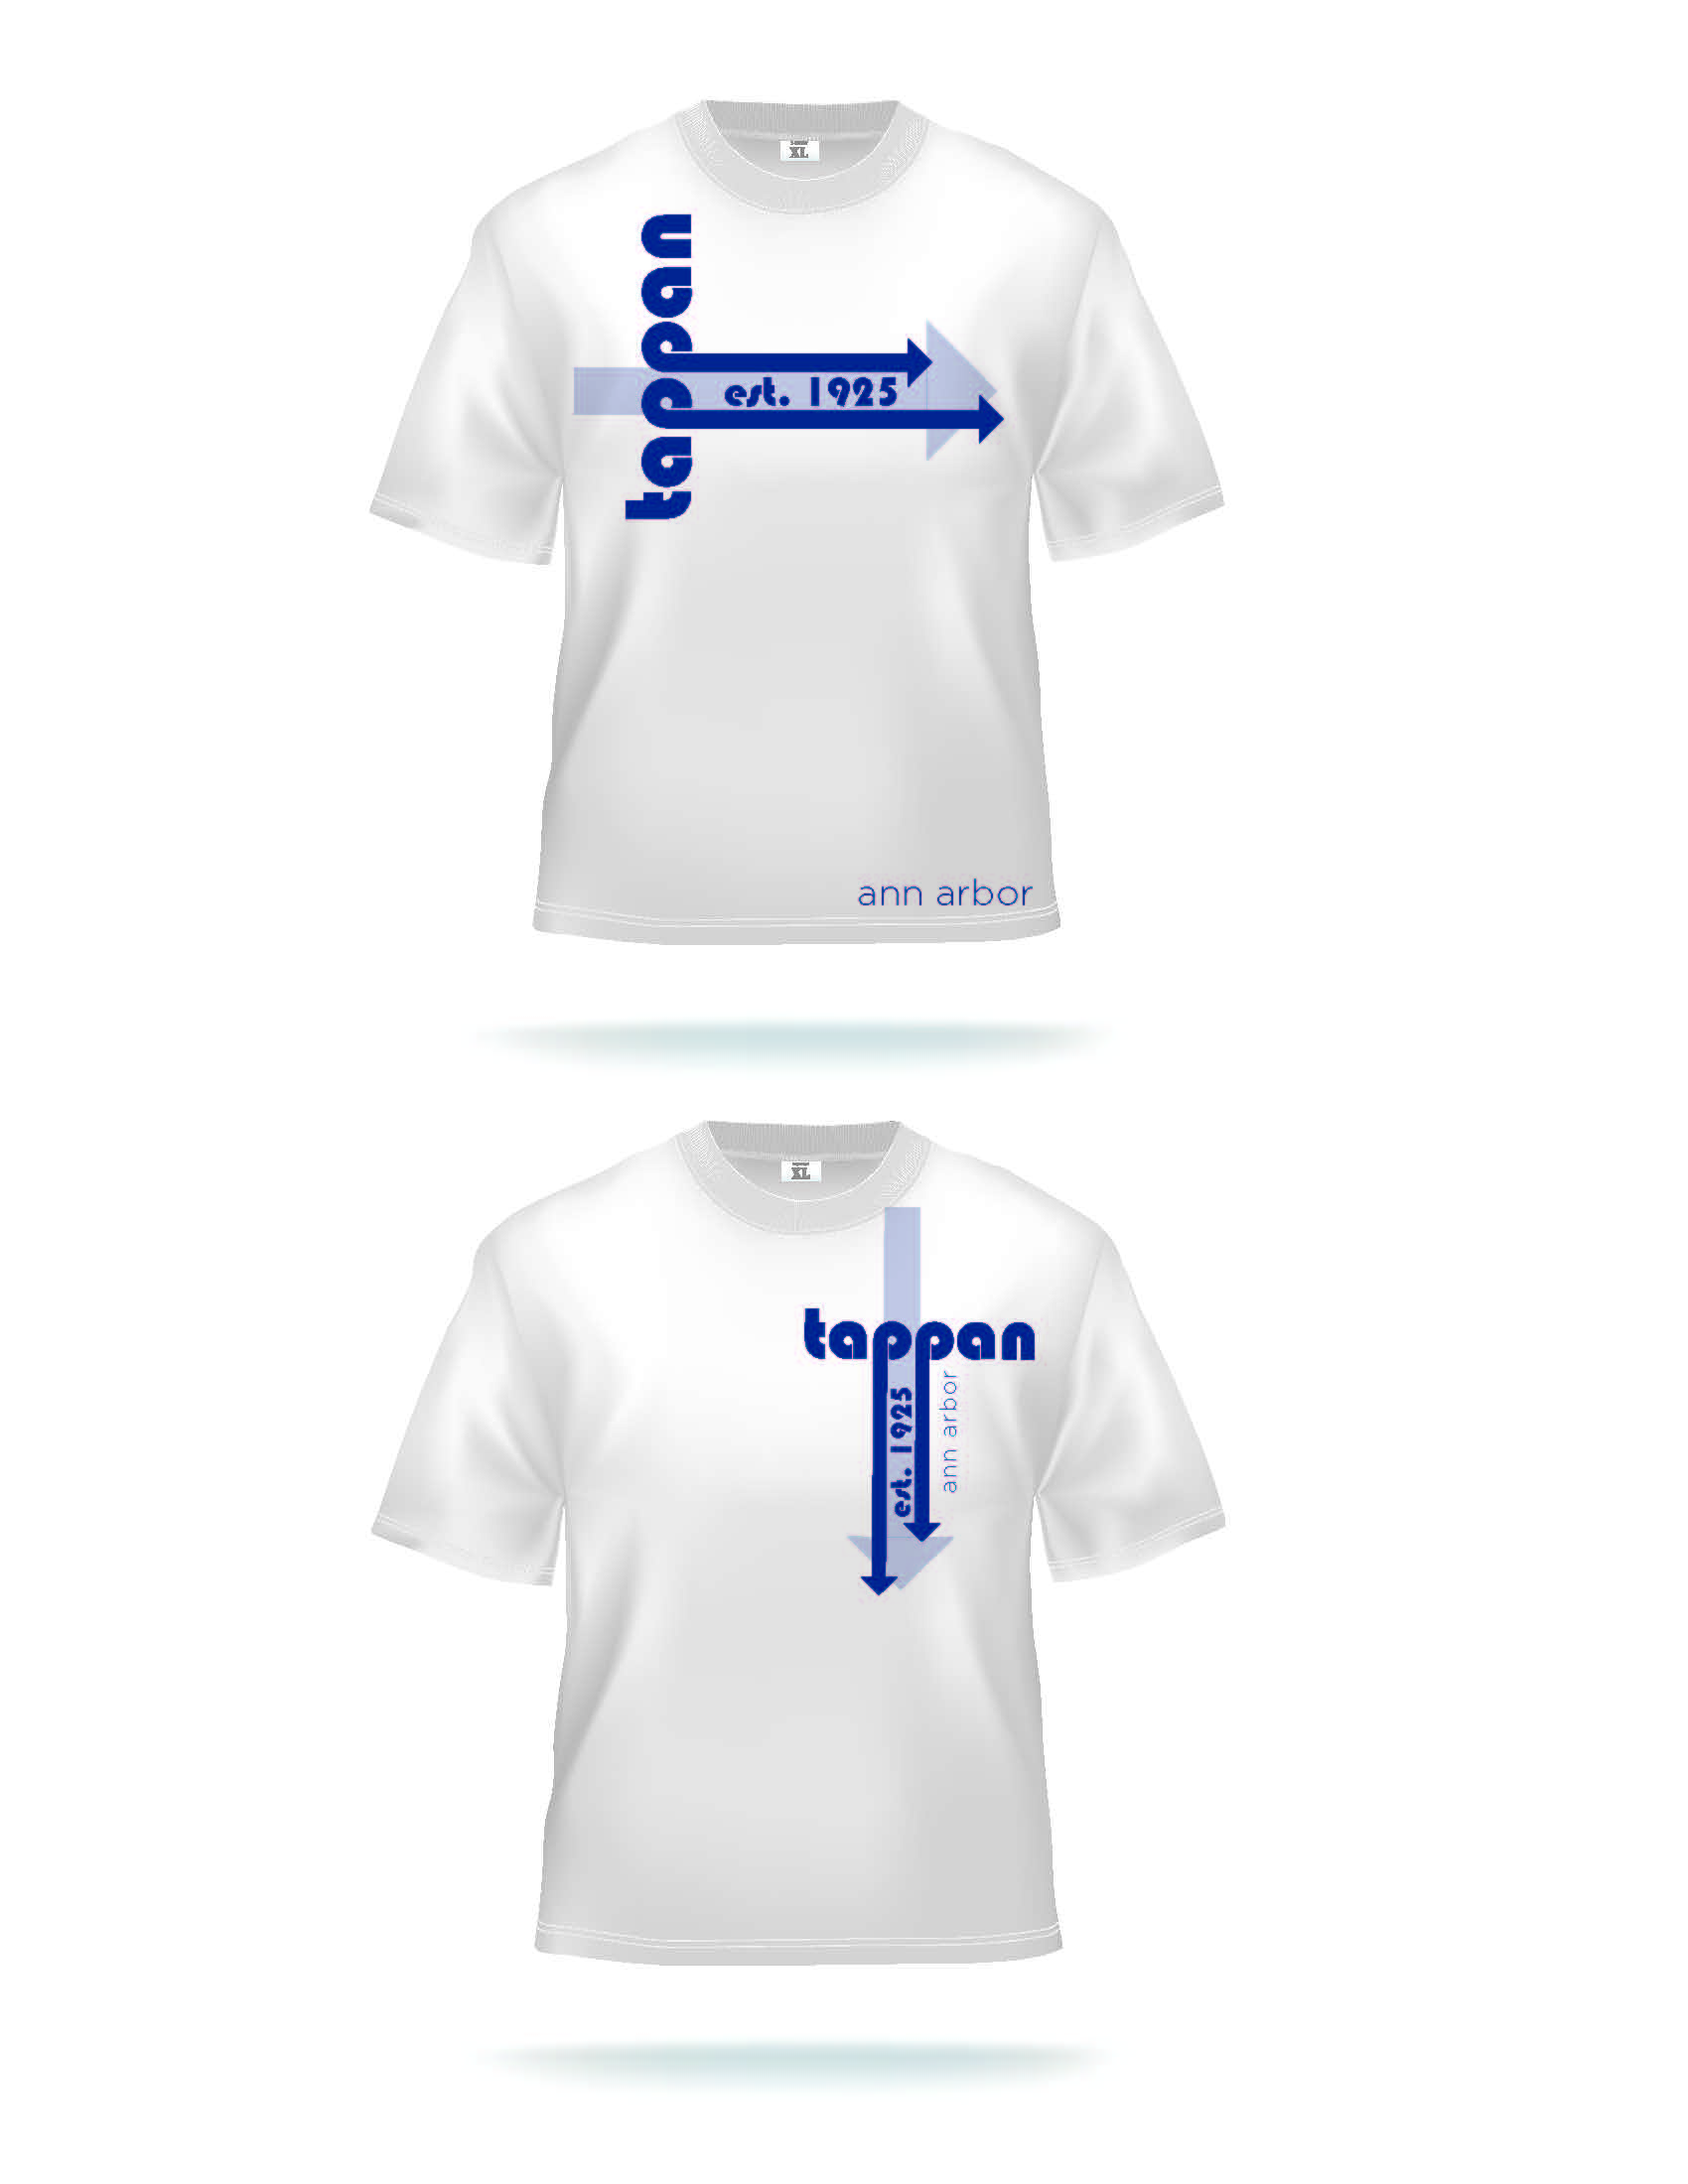 Tappan T-shirt Designs